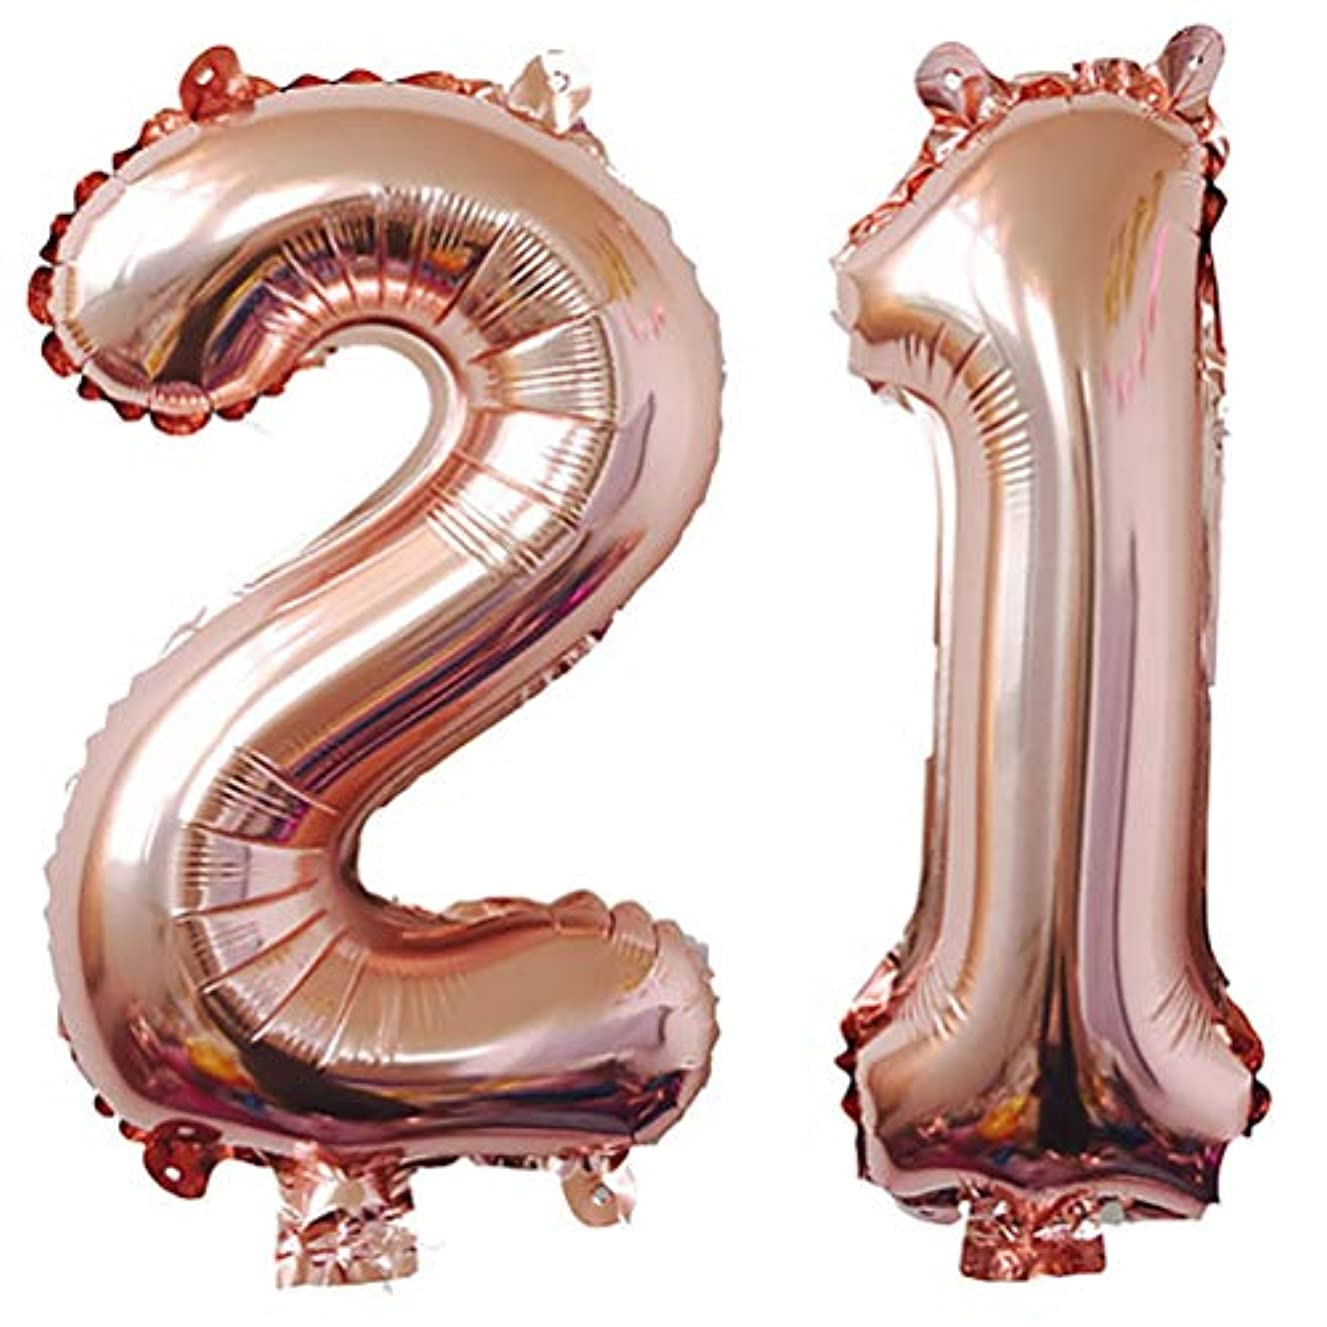 AZOWA Big 21 Balloons Jumbo Number 21 Balloons Rose Gold for 21th Birthday Party Decorations (Rose Gold, 40 in)